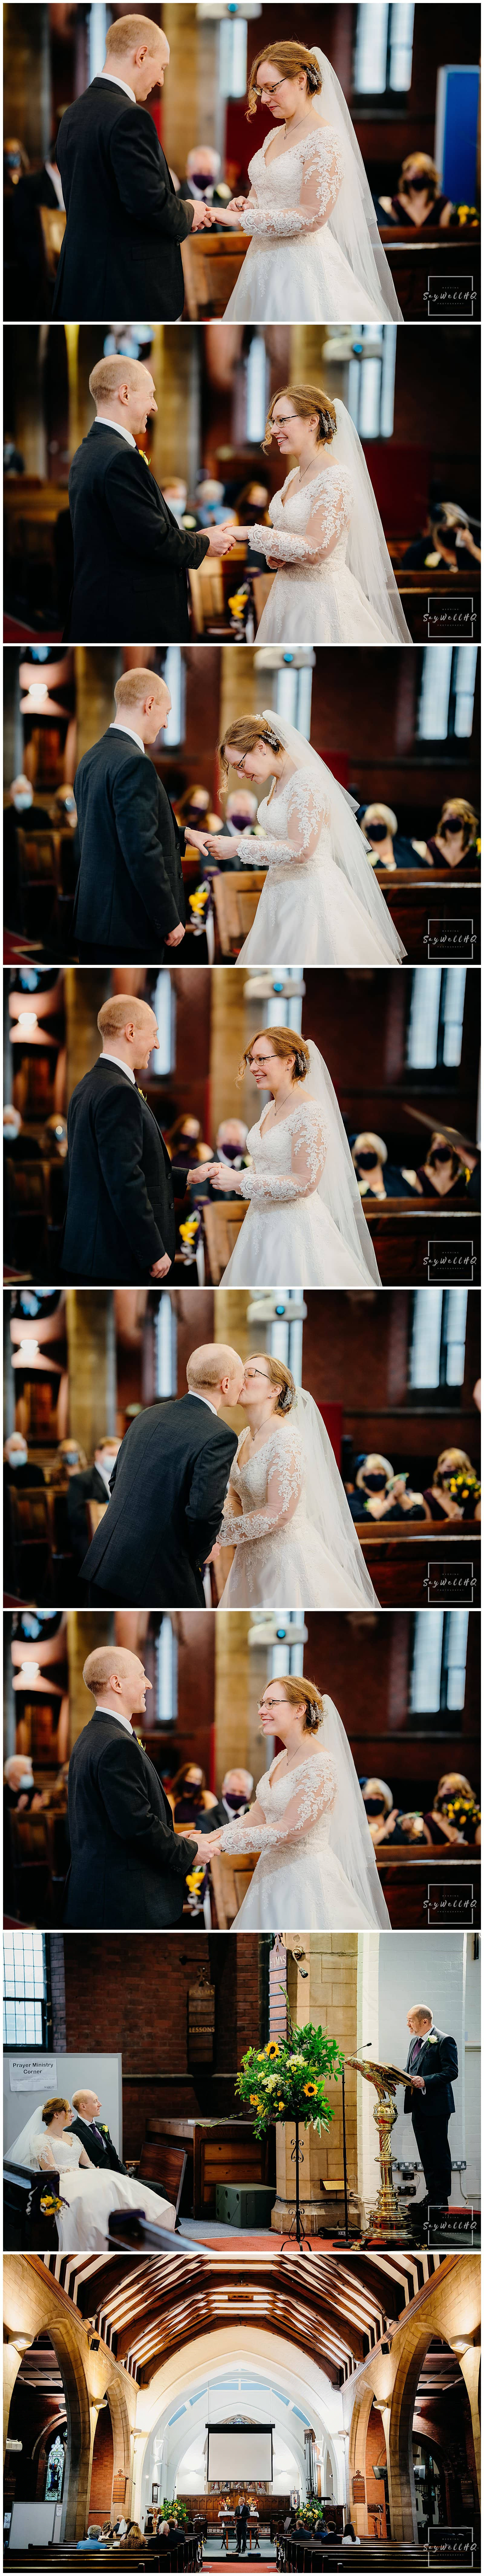 Bride and groom exchange rings during the micro wedding at St Judes Church in Mapperley Nottingham